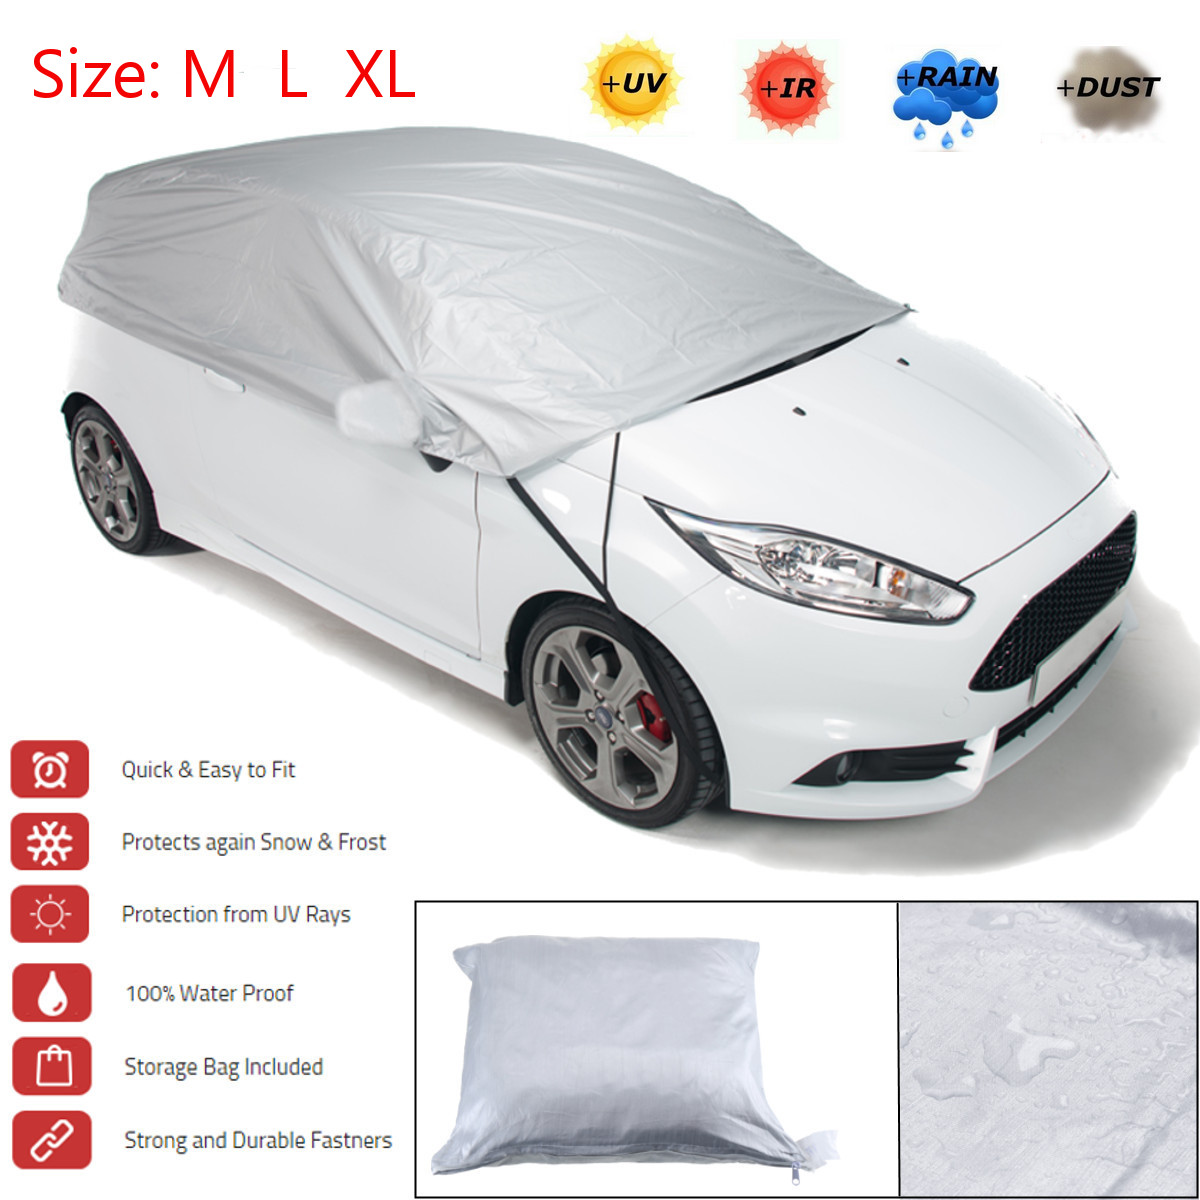 Universal Car Cover Sun Shade Snow Ice Protection Dustproof Waterproof Outdoor Protective Covers(China)